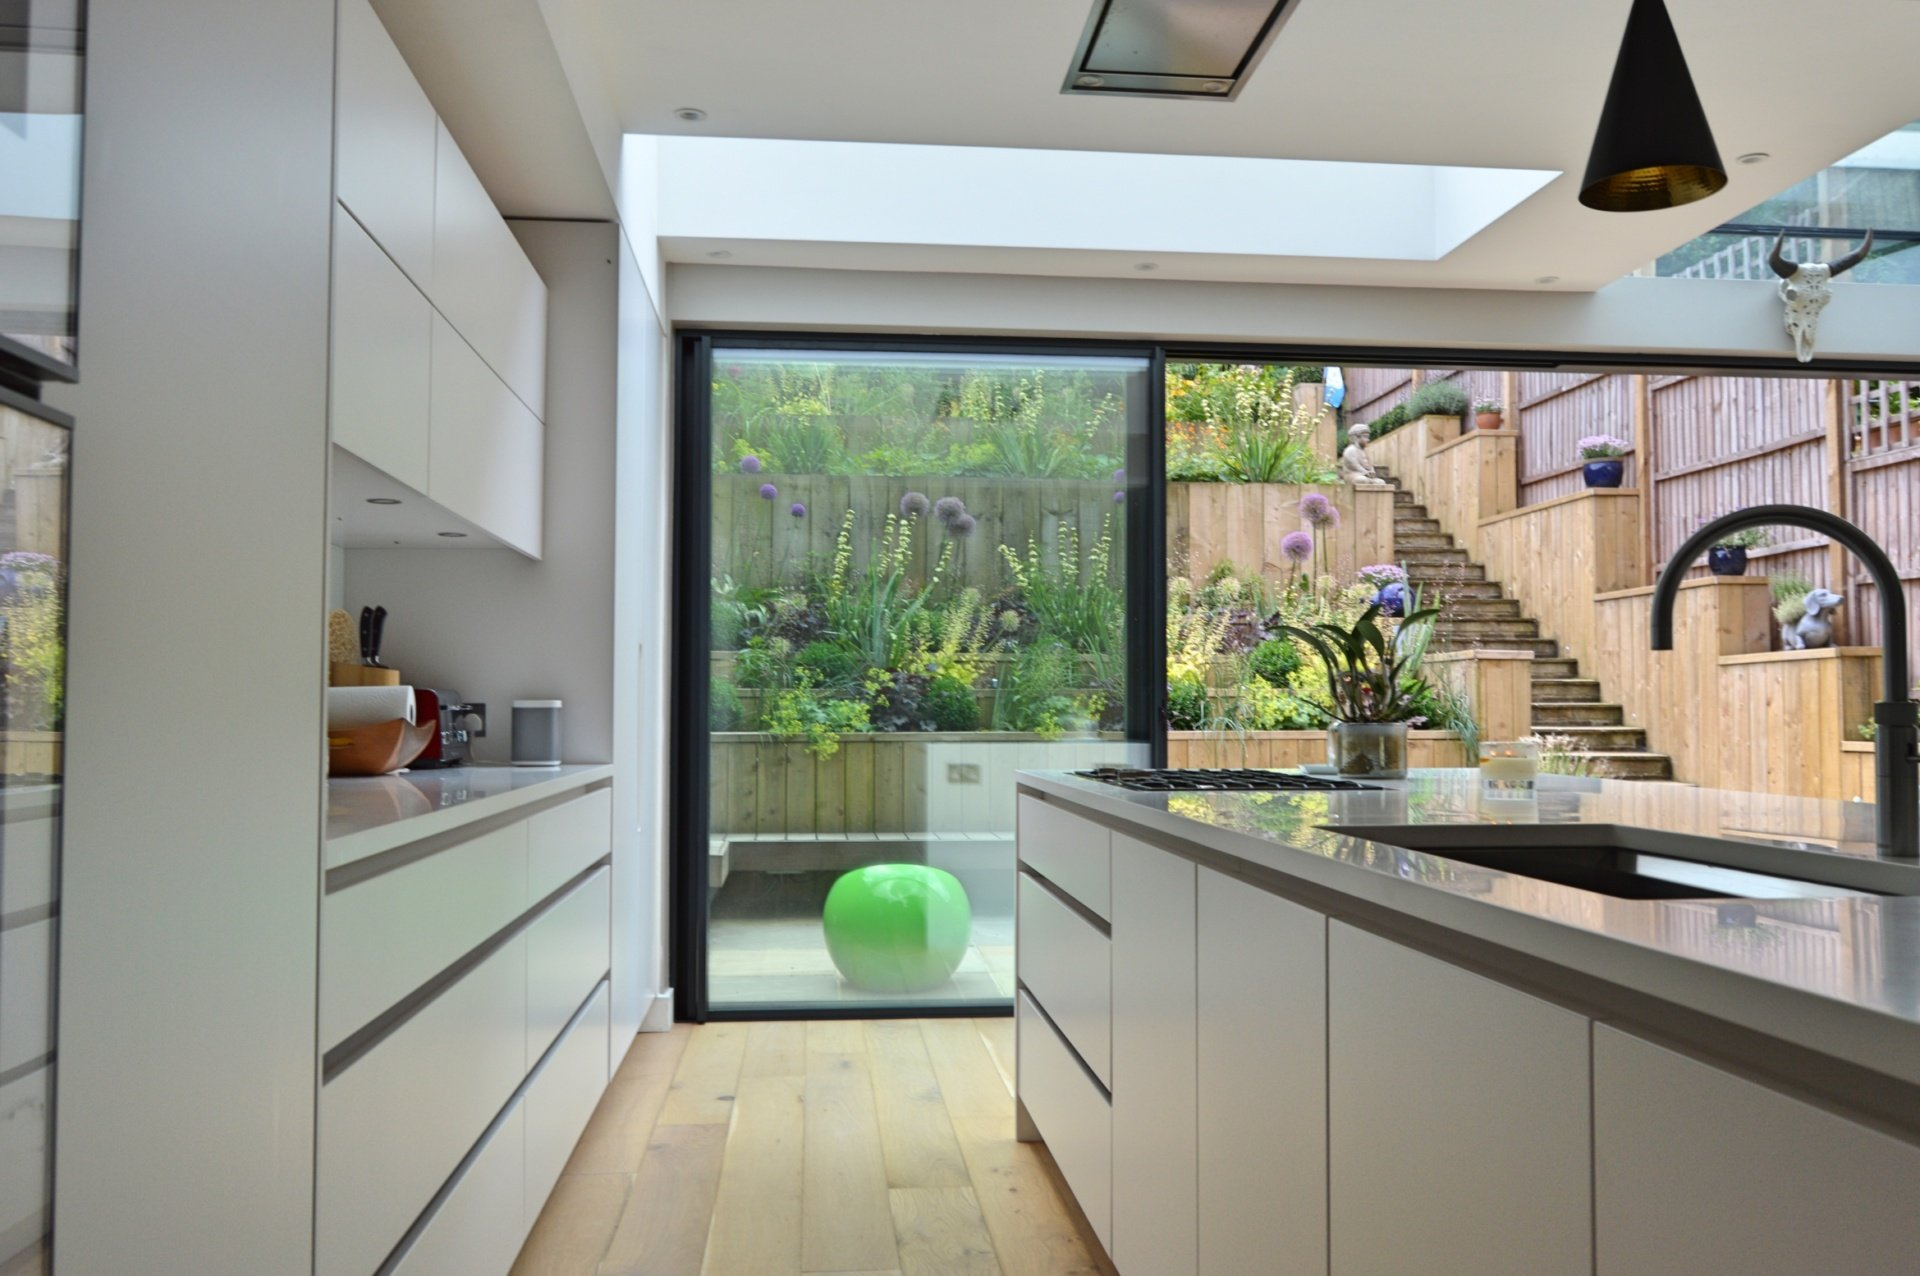 Architect designed rear house extension Highgate Haringey N6 – View to the garden from the kitchen area Highgate, Haringey N6 | Rear house extension